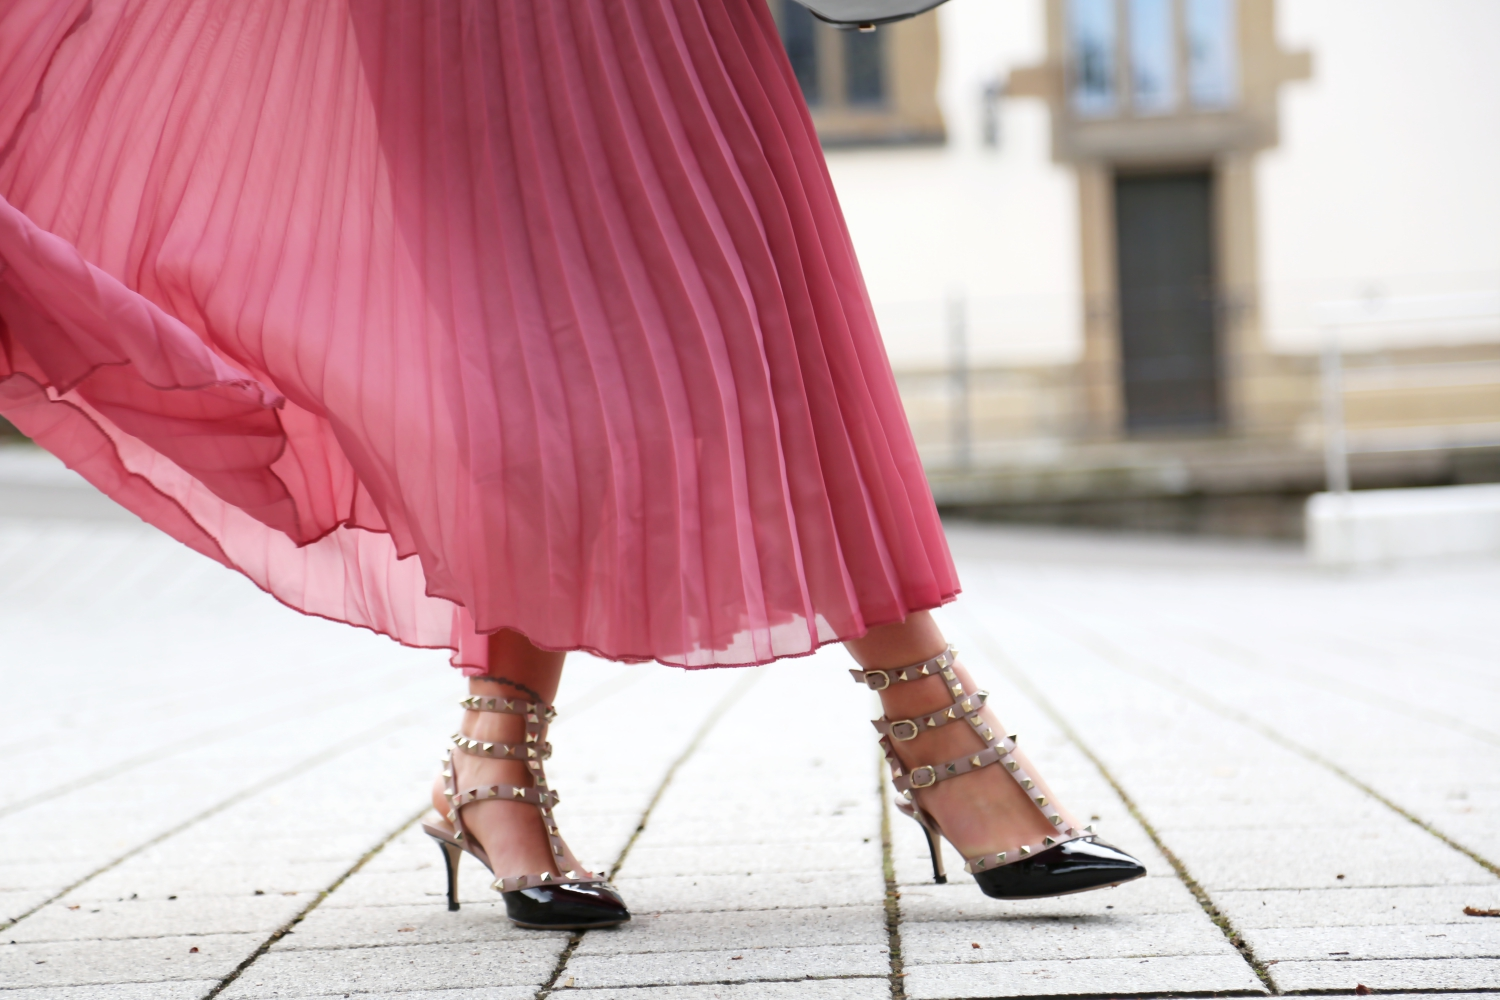 outfit-details-spring-summer-look-pleated-skirt-valentino-rockstud-kitten-heels